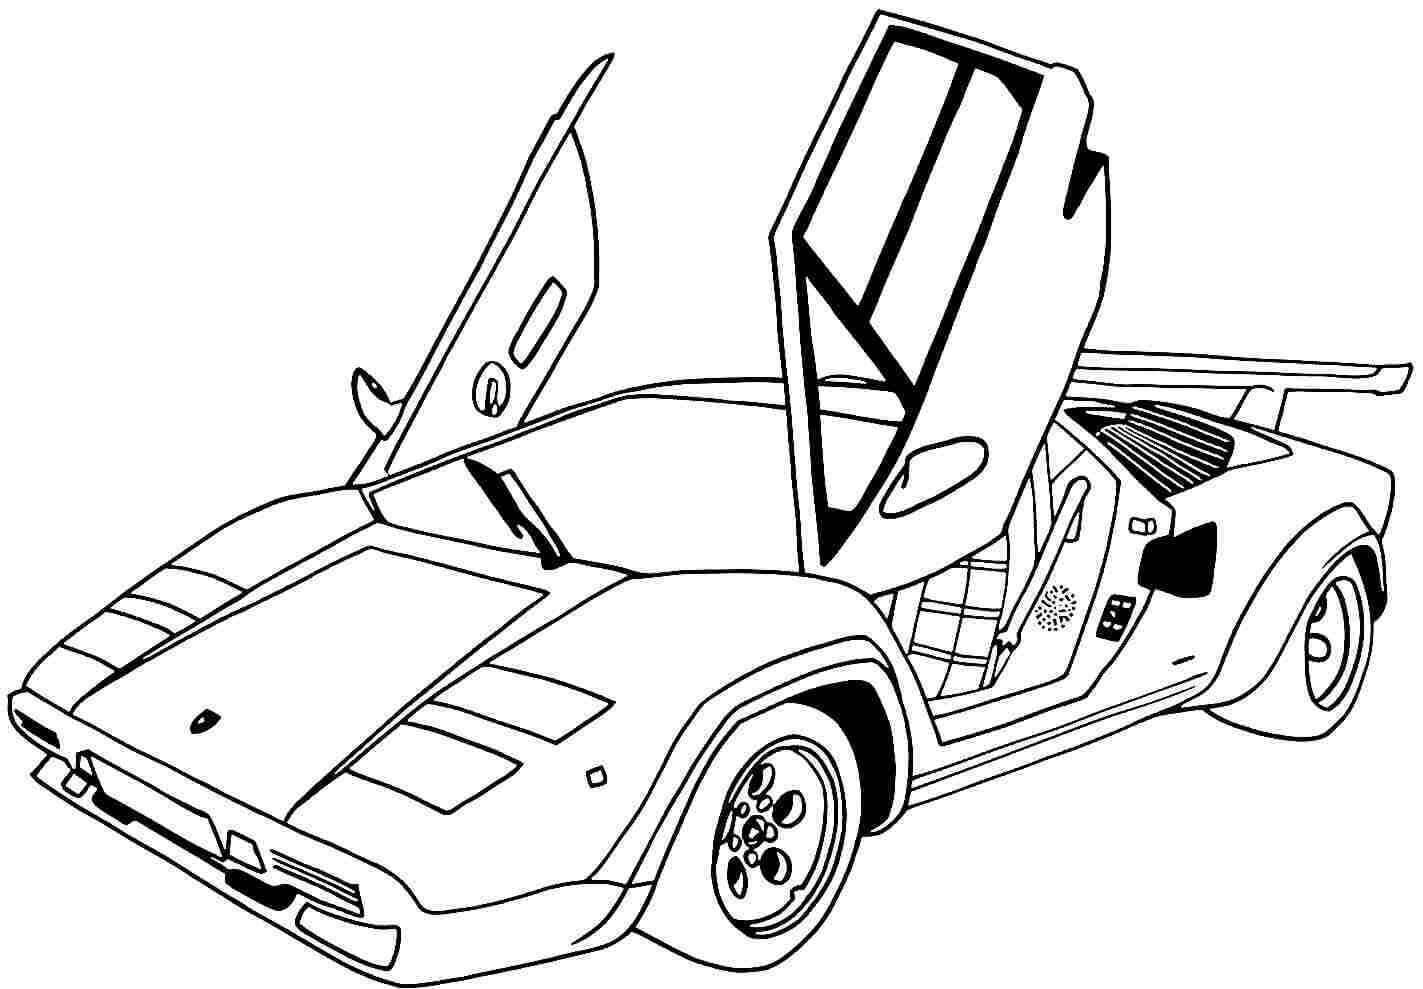 cars for coloring 10 car coloring sheets sports muscle racing cars and for coloring cars